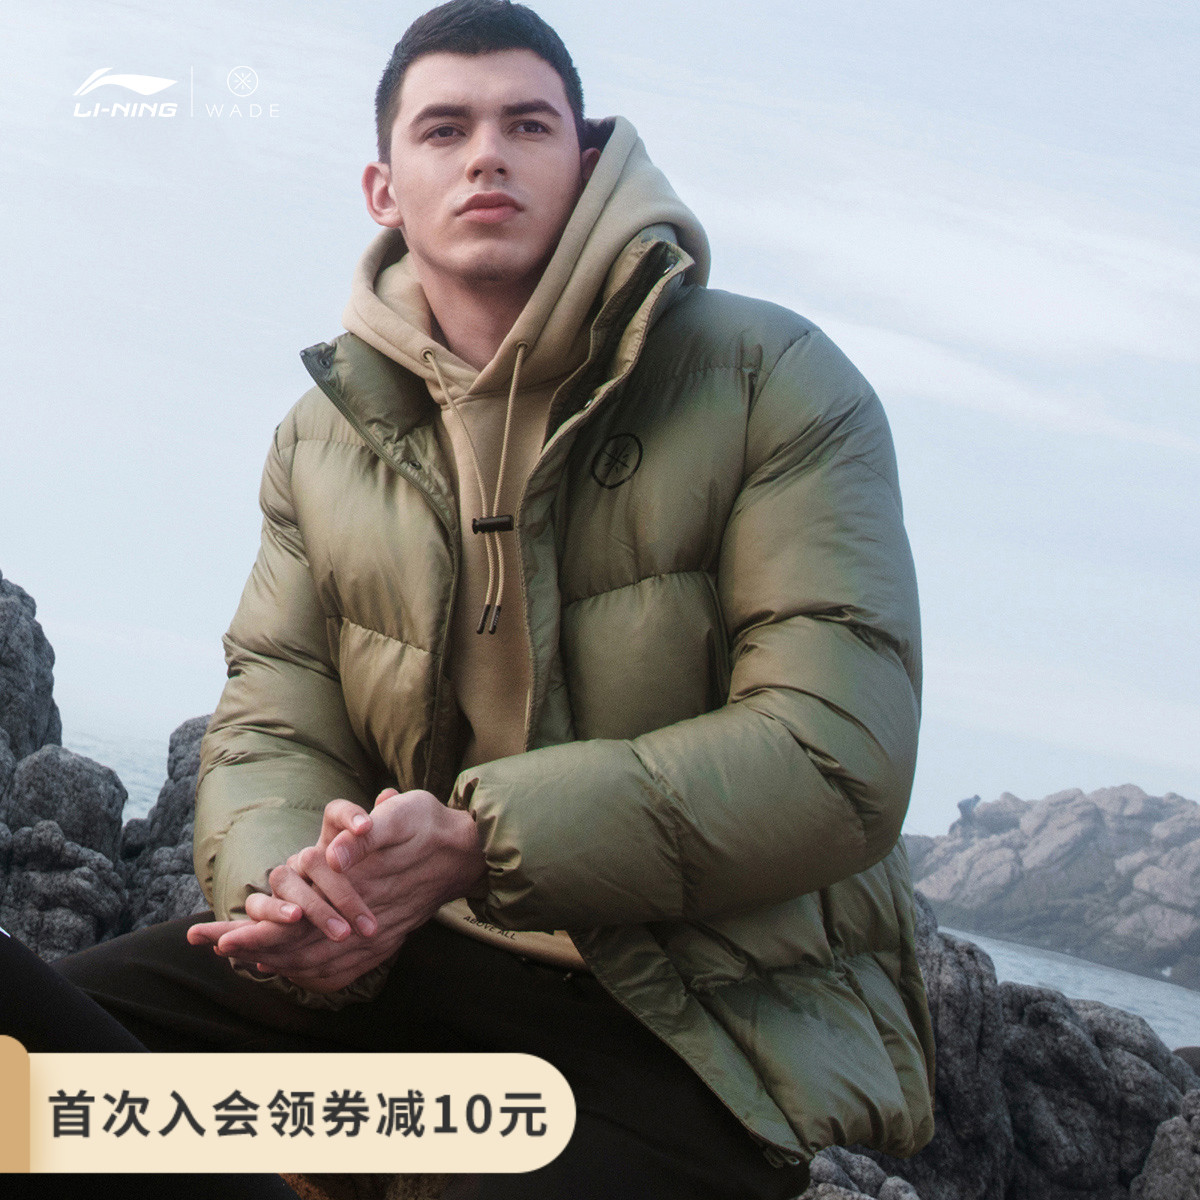 Li Ning short down jacket men's official new Wade series winter hooded top men's velvet sportswear